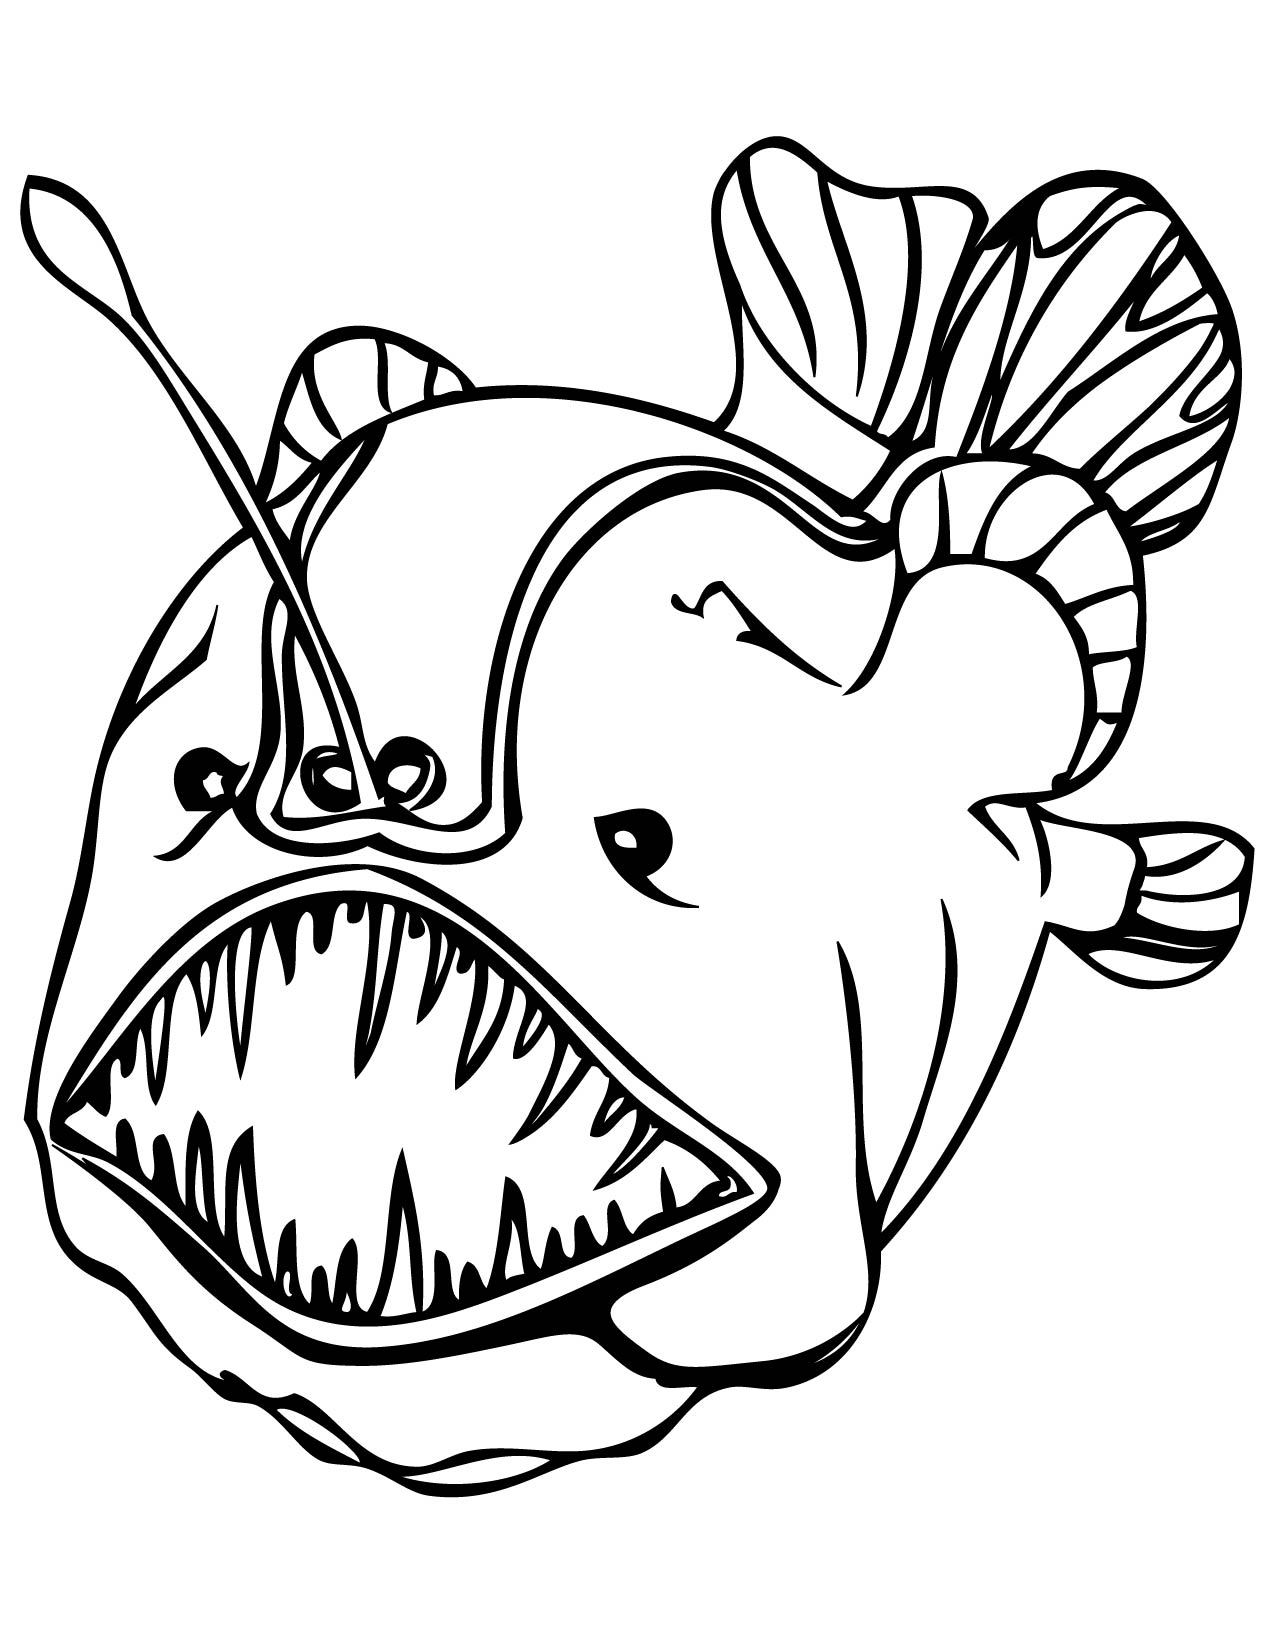 Sea fish coloring pages download and print for free for Free coloring fish pages